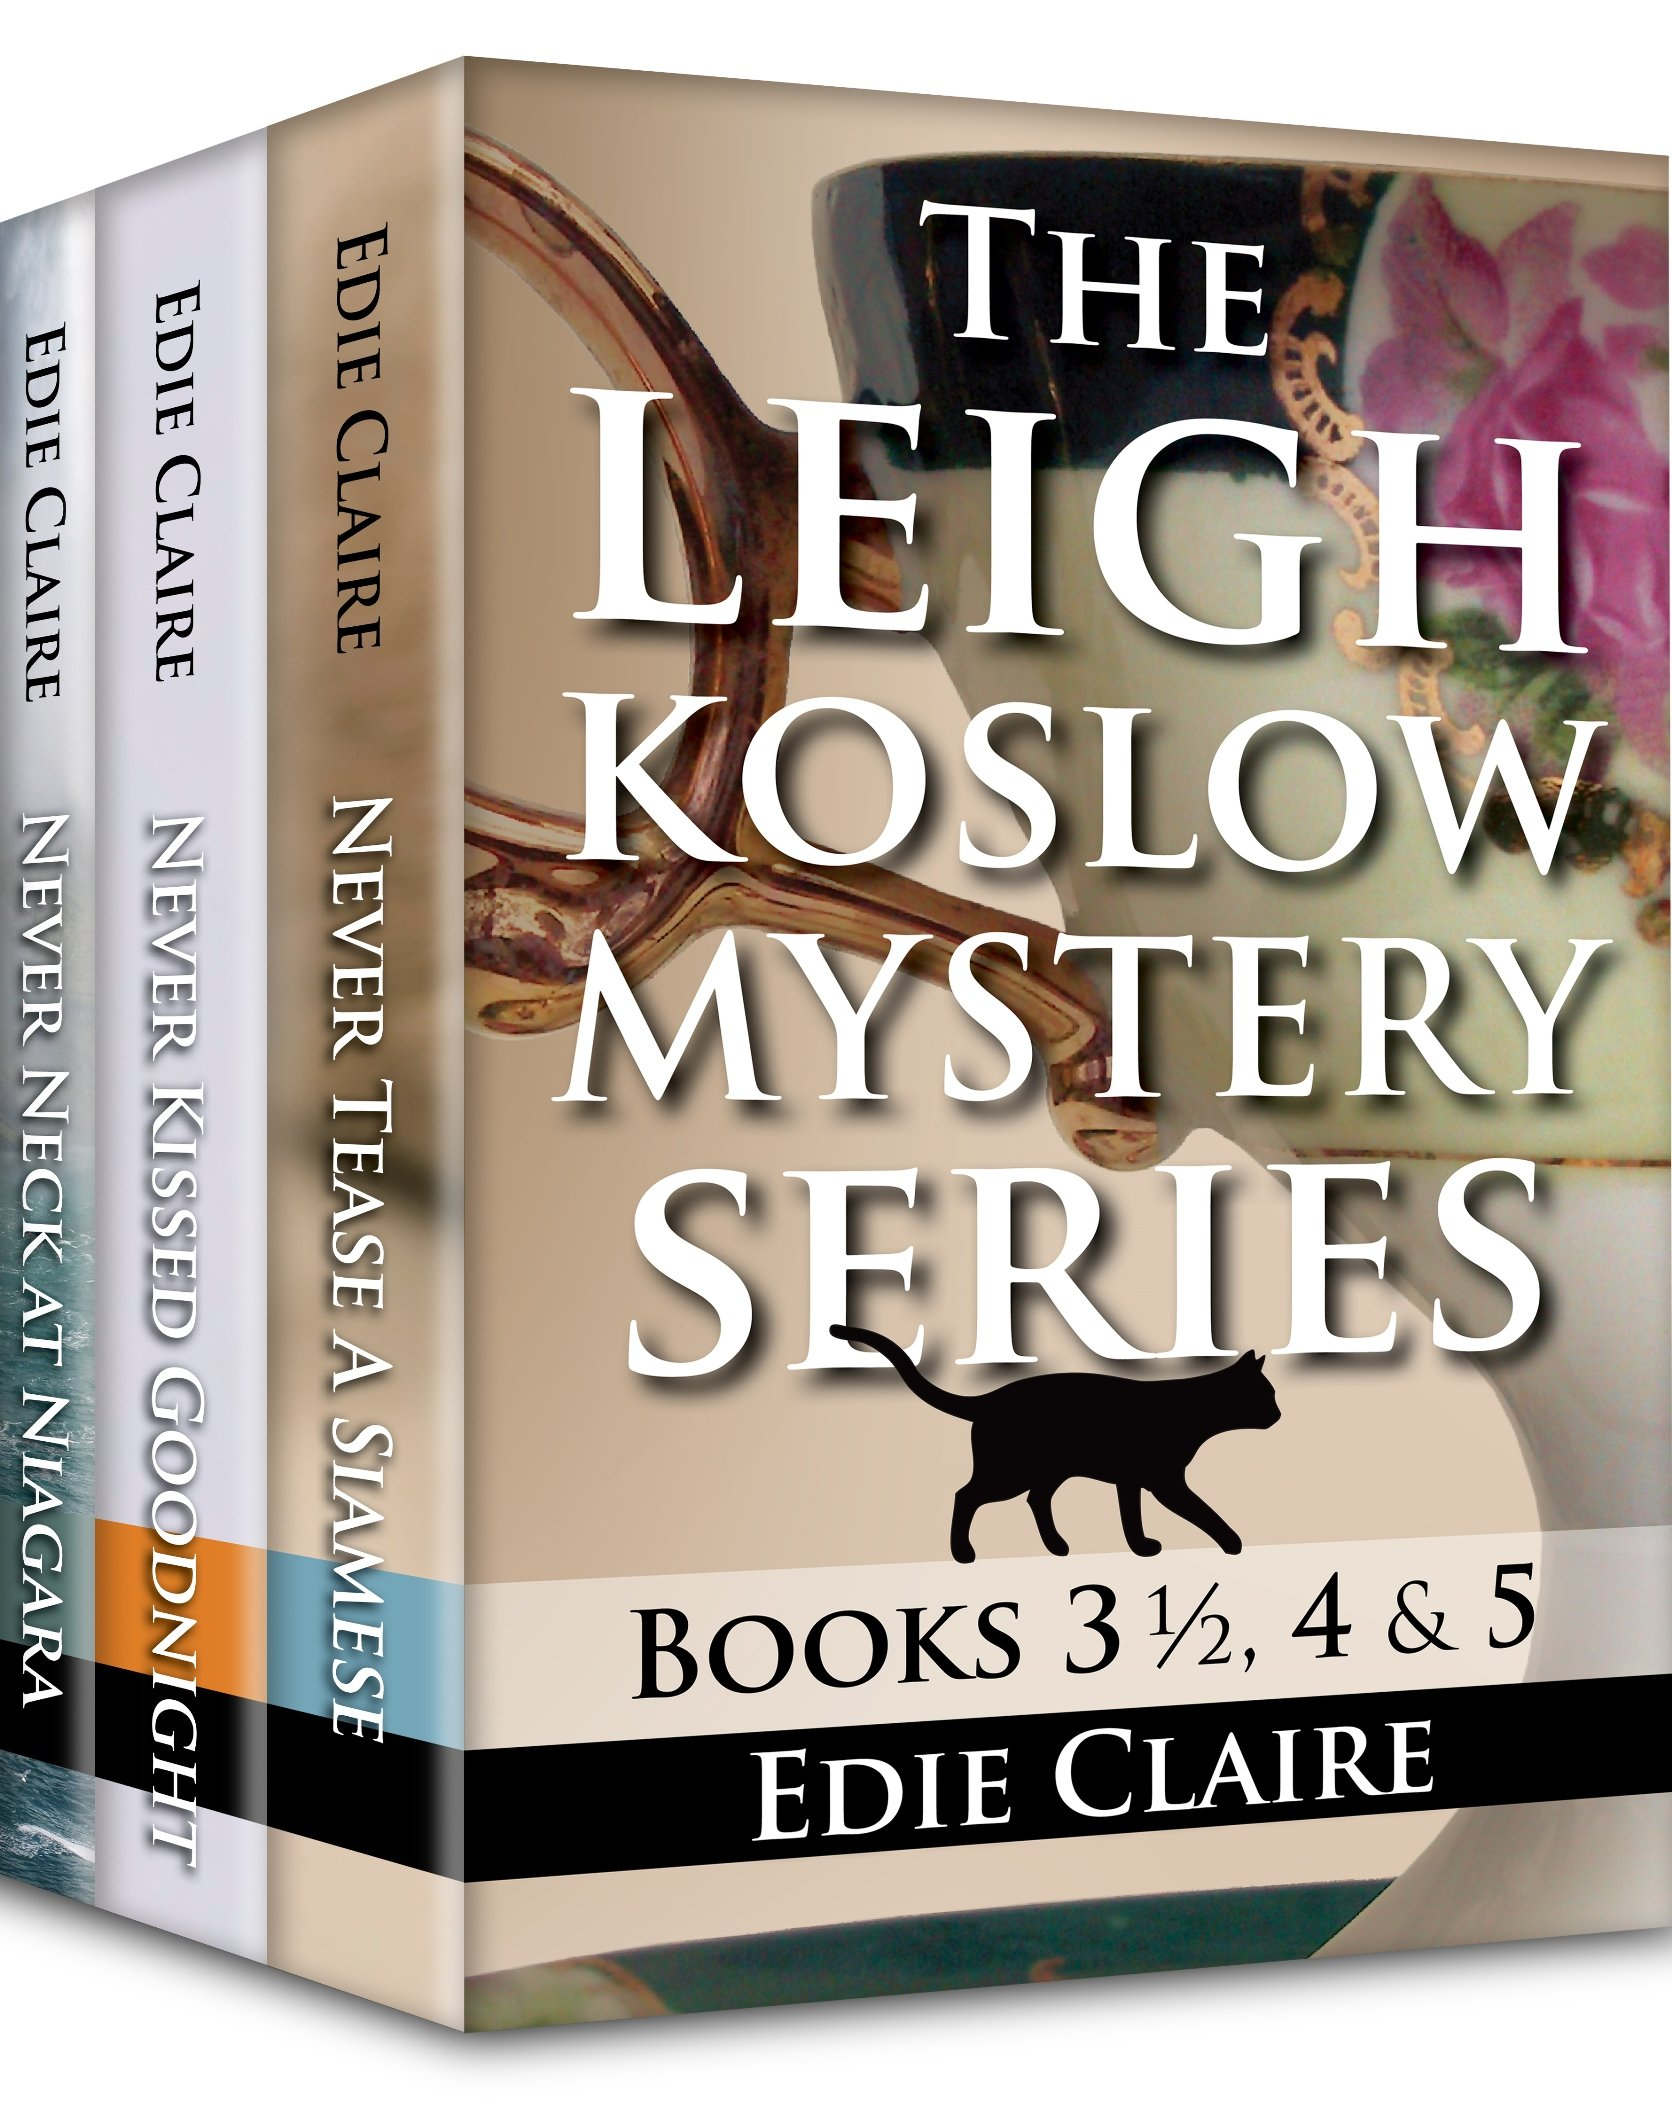 The Leigh Koslow Mystery Series Books 3 ½, 4 & 5 Cover